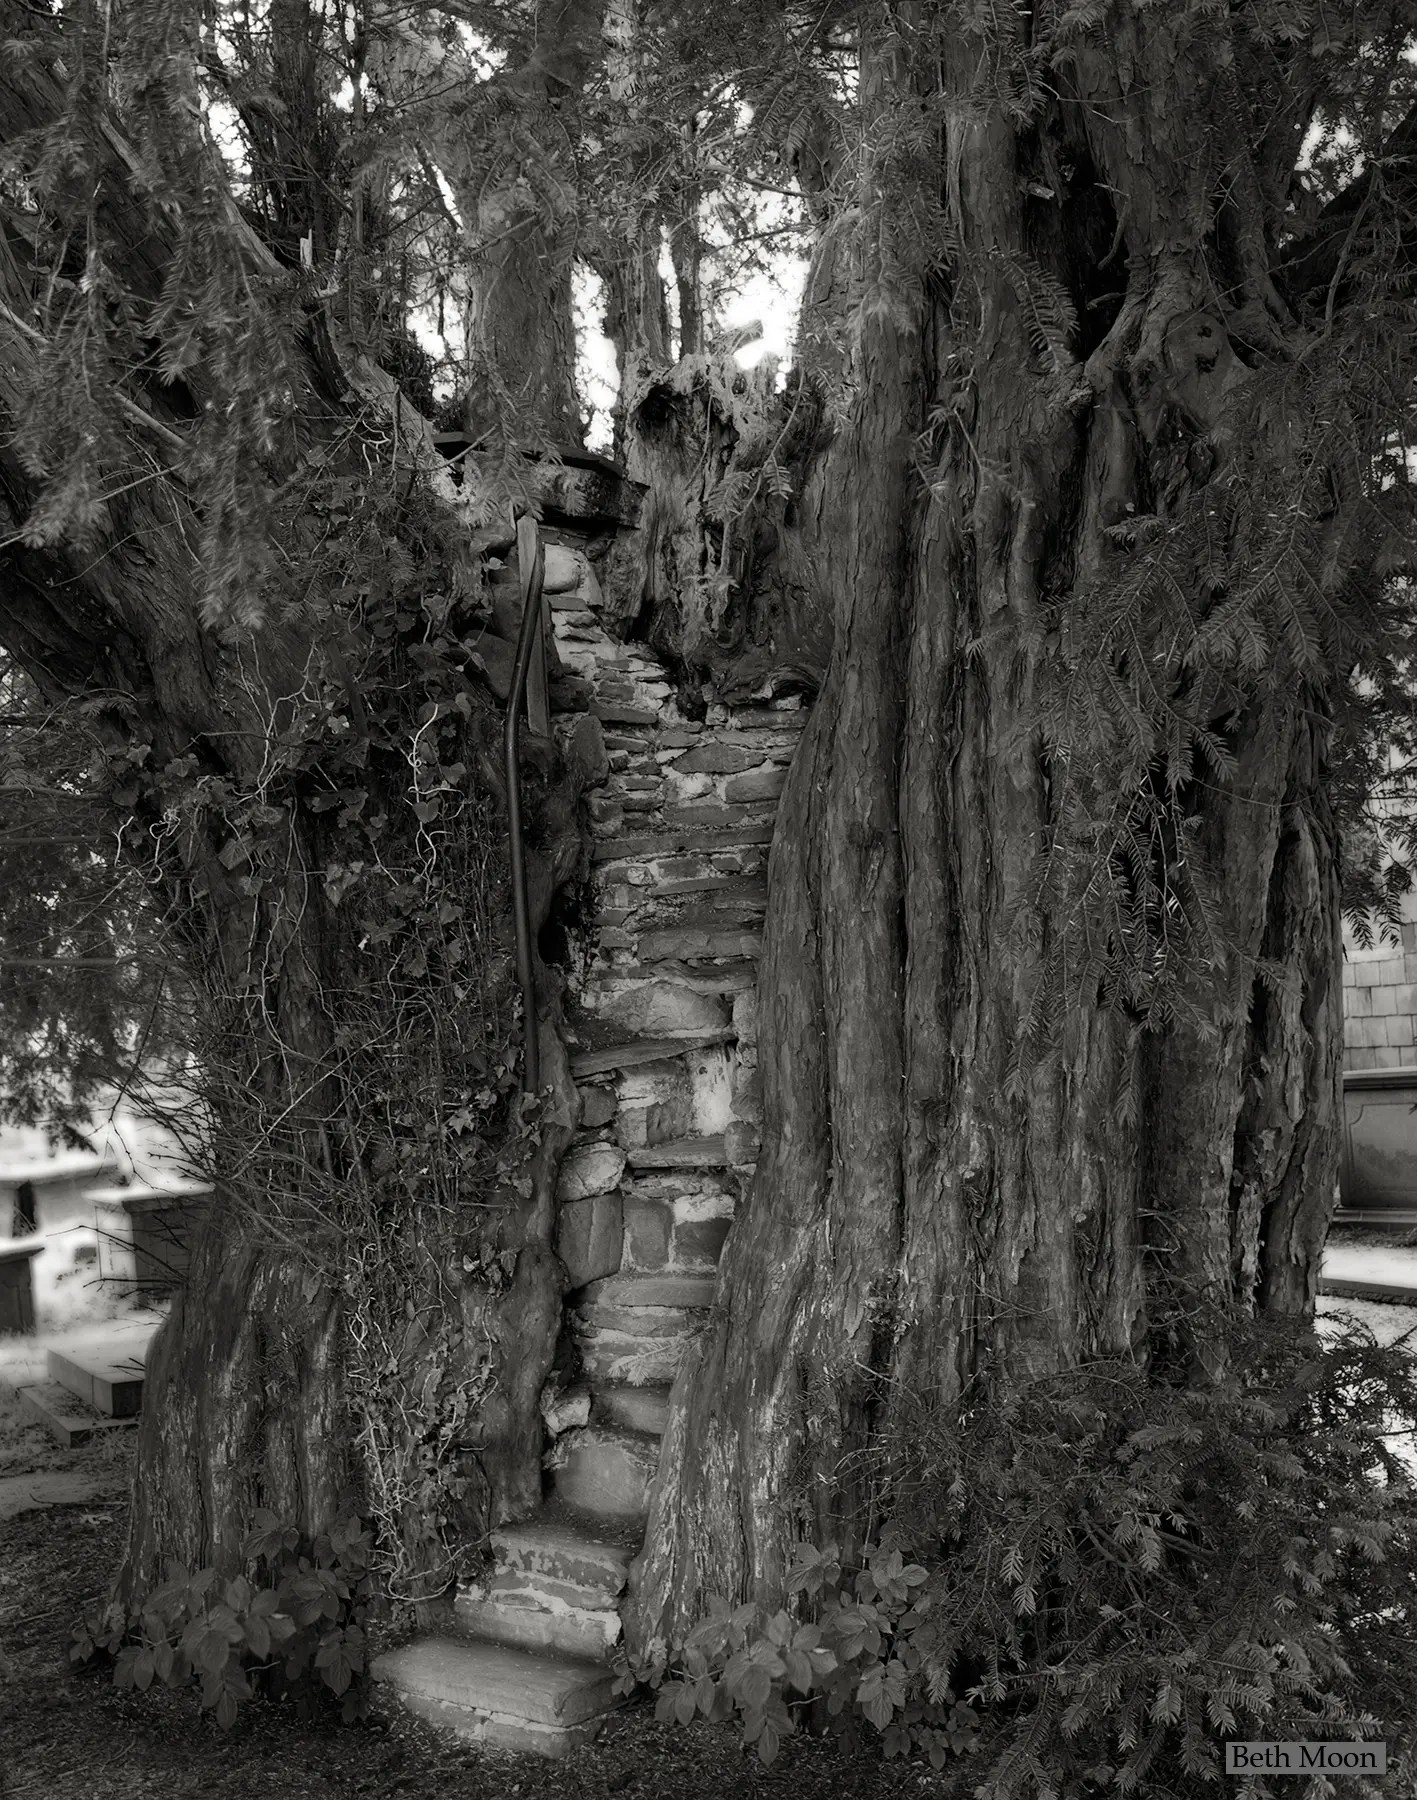 This tree, another ancient Yew, grows in the churchyard of a small parish church in rural Wales. Built into the trunk of the tree is a pulpit, complete with steps and a chair, from which sermons would be given, as far back as the 1850s.